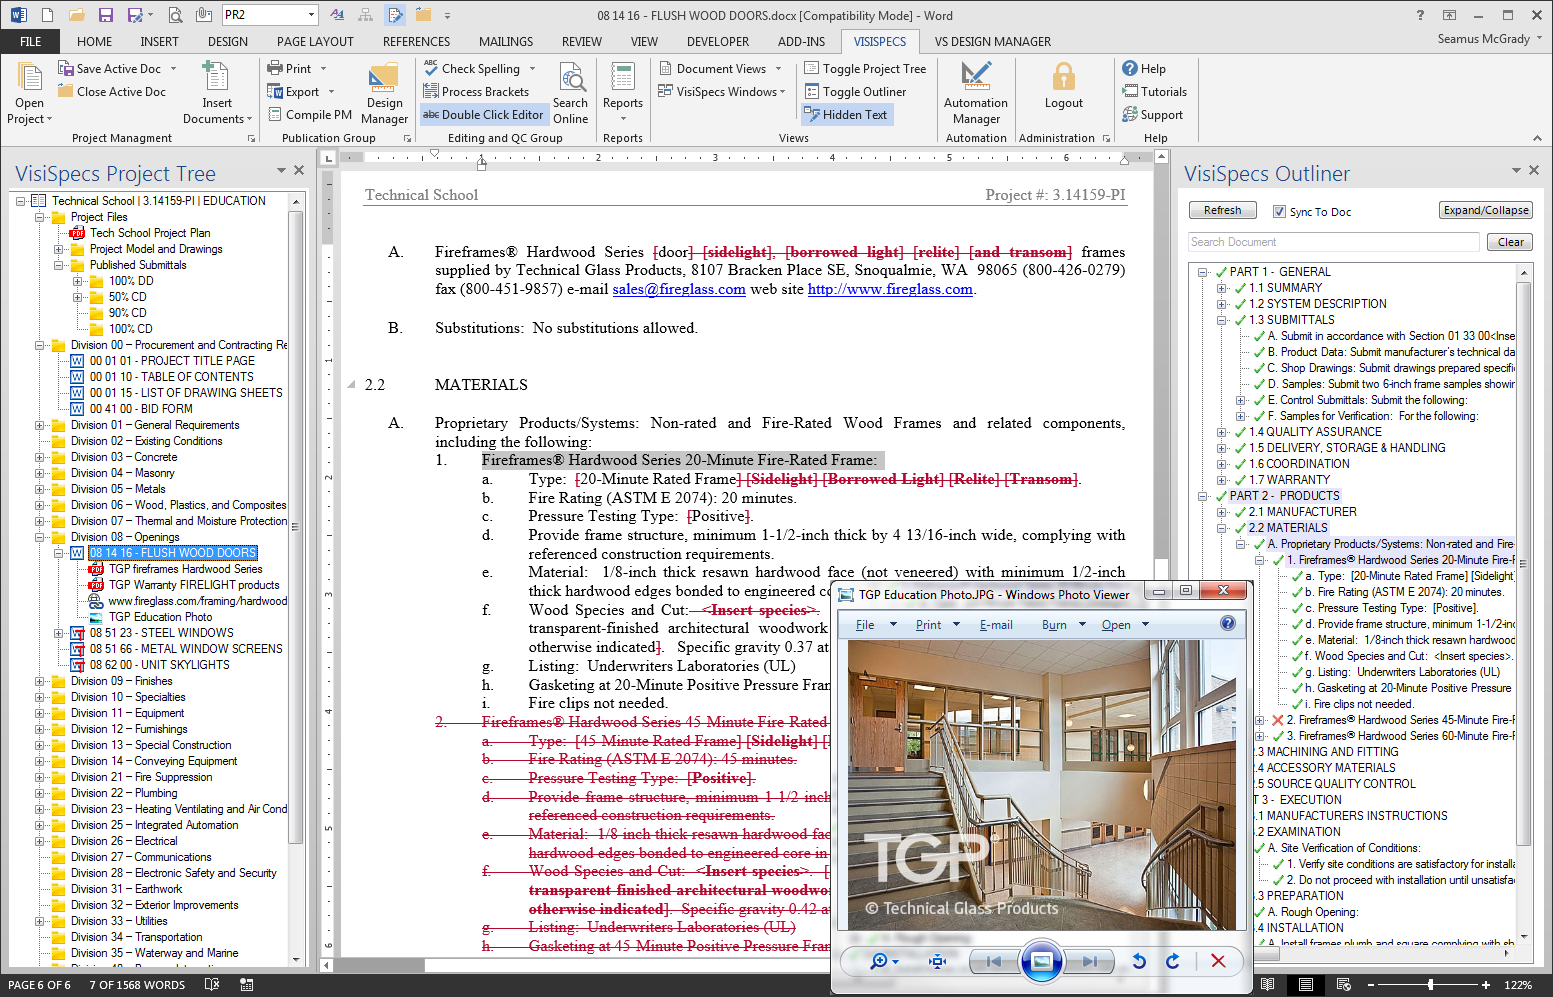 VisiWord leverages the feature rich editing of Microsoft Word with advanced spec editing tools, centralized documentation management, and project manual publication.